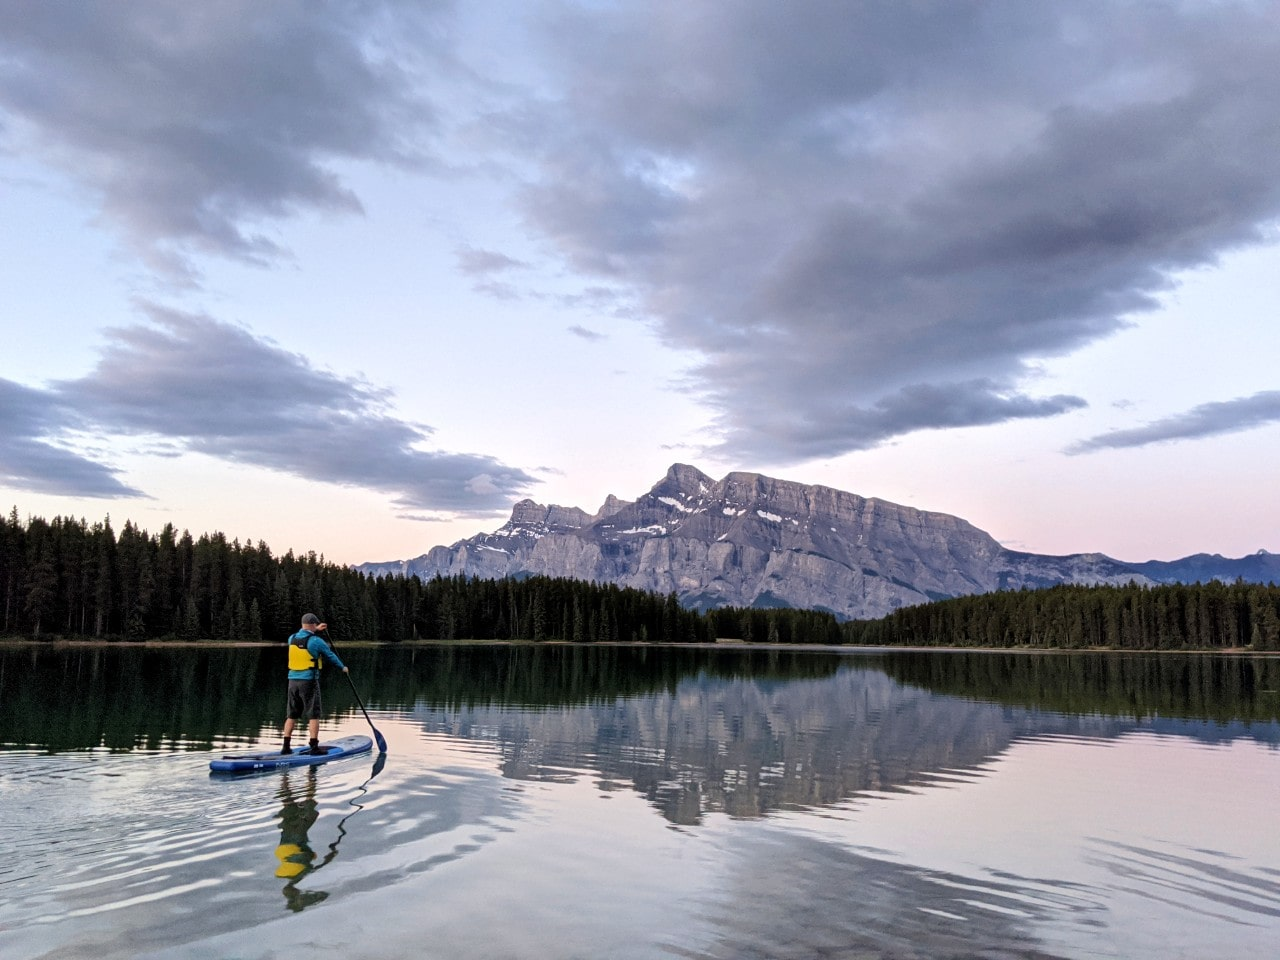 JR standing on paddleboard on calm Two Jack Lake near Banff with mountain background and sunrise colours